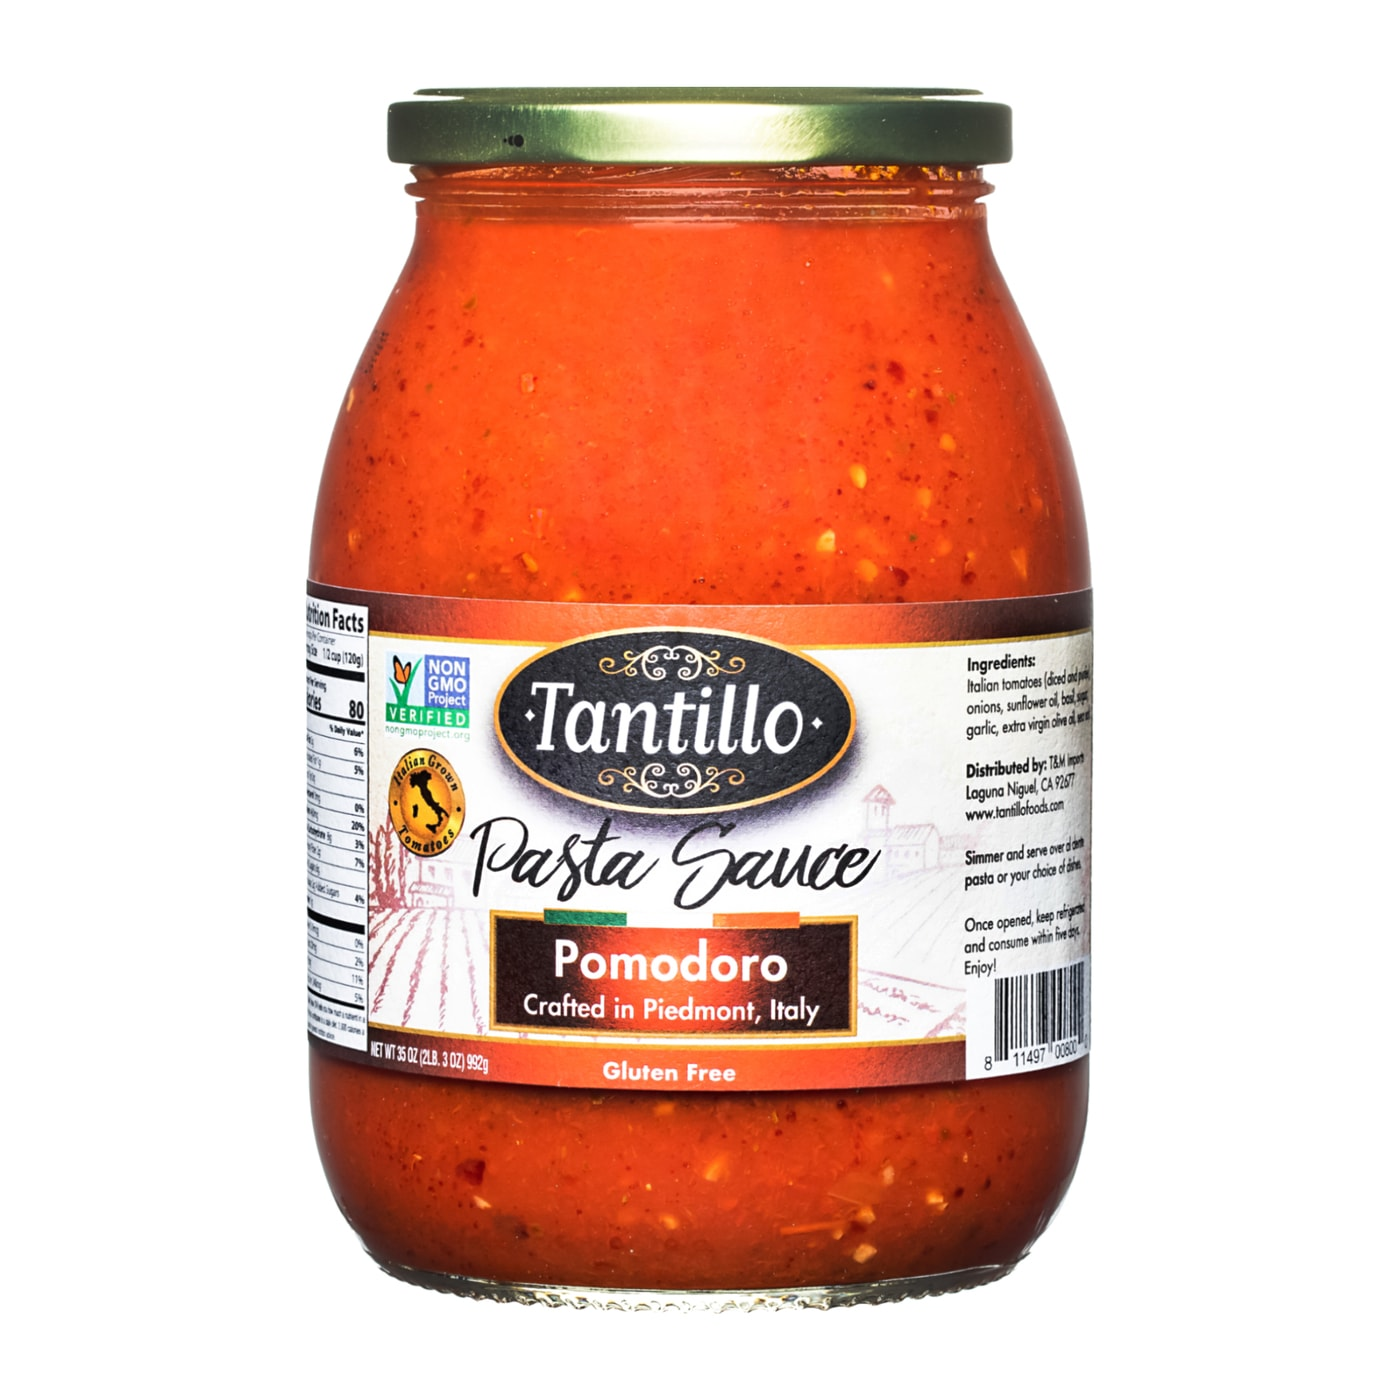 Tantillo Imported Italian Pomodoro Pasta Sauce 35oz (Pack of 2)